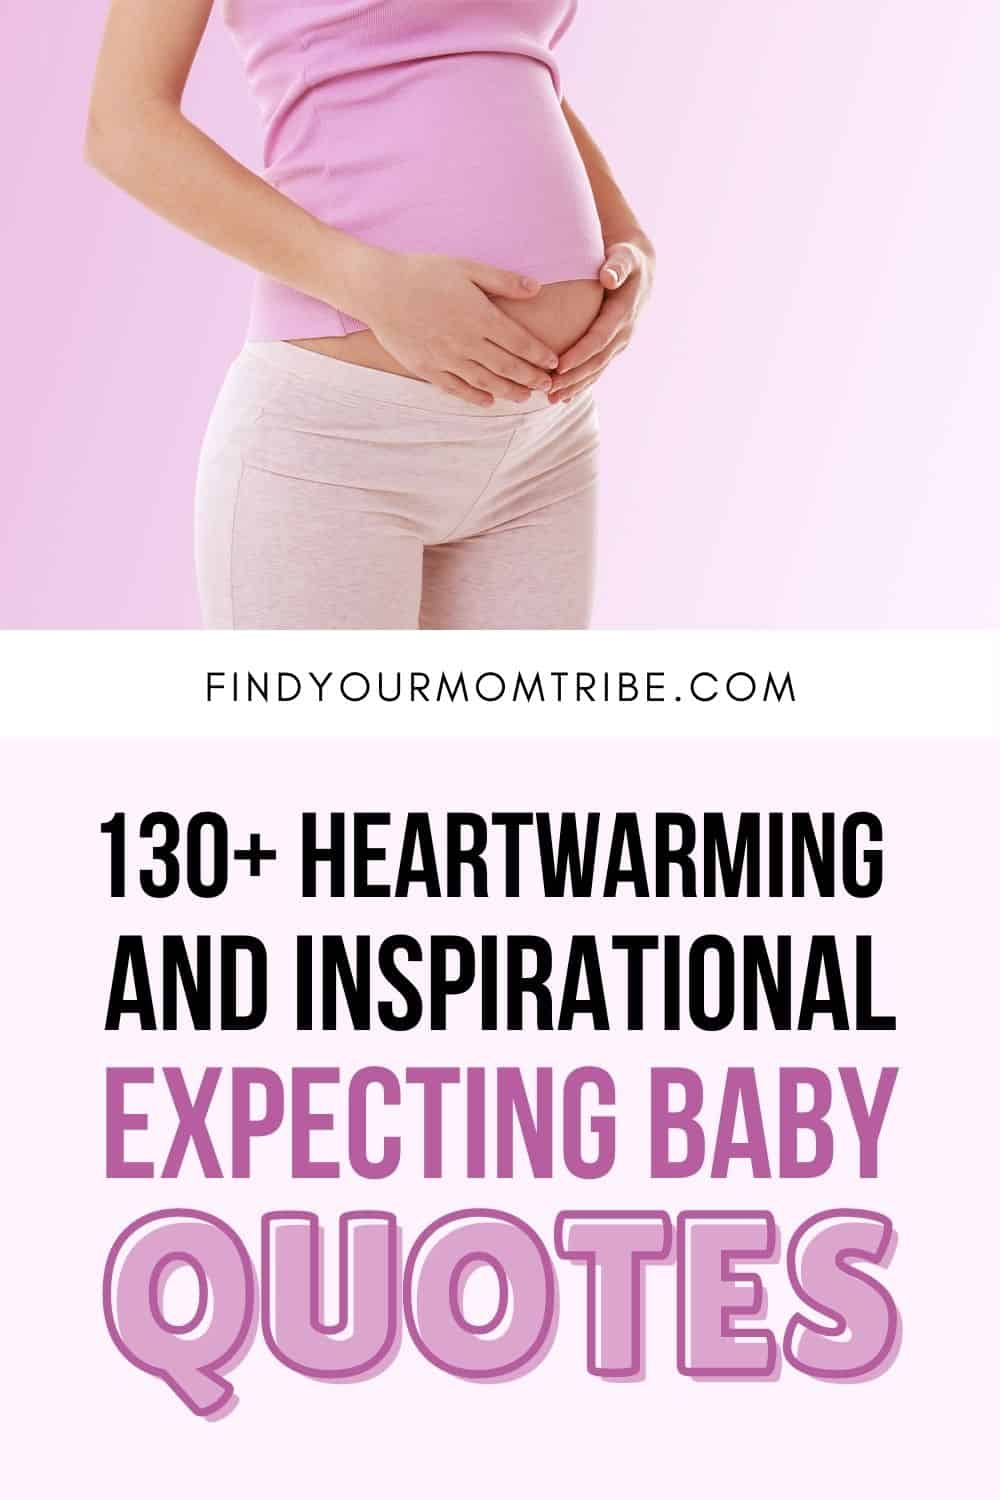 130+ Heartwarming And Inspirational Expecting Baby Quotes Pinterest